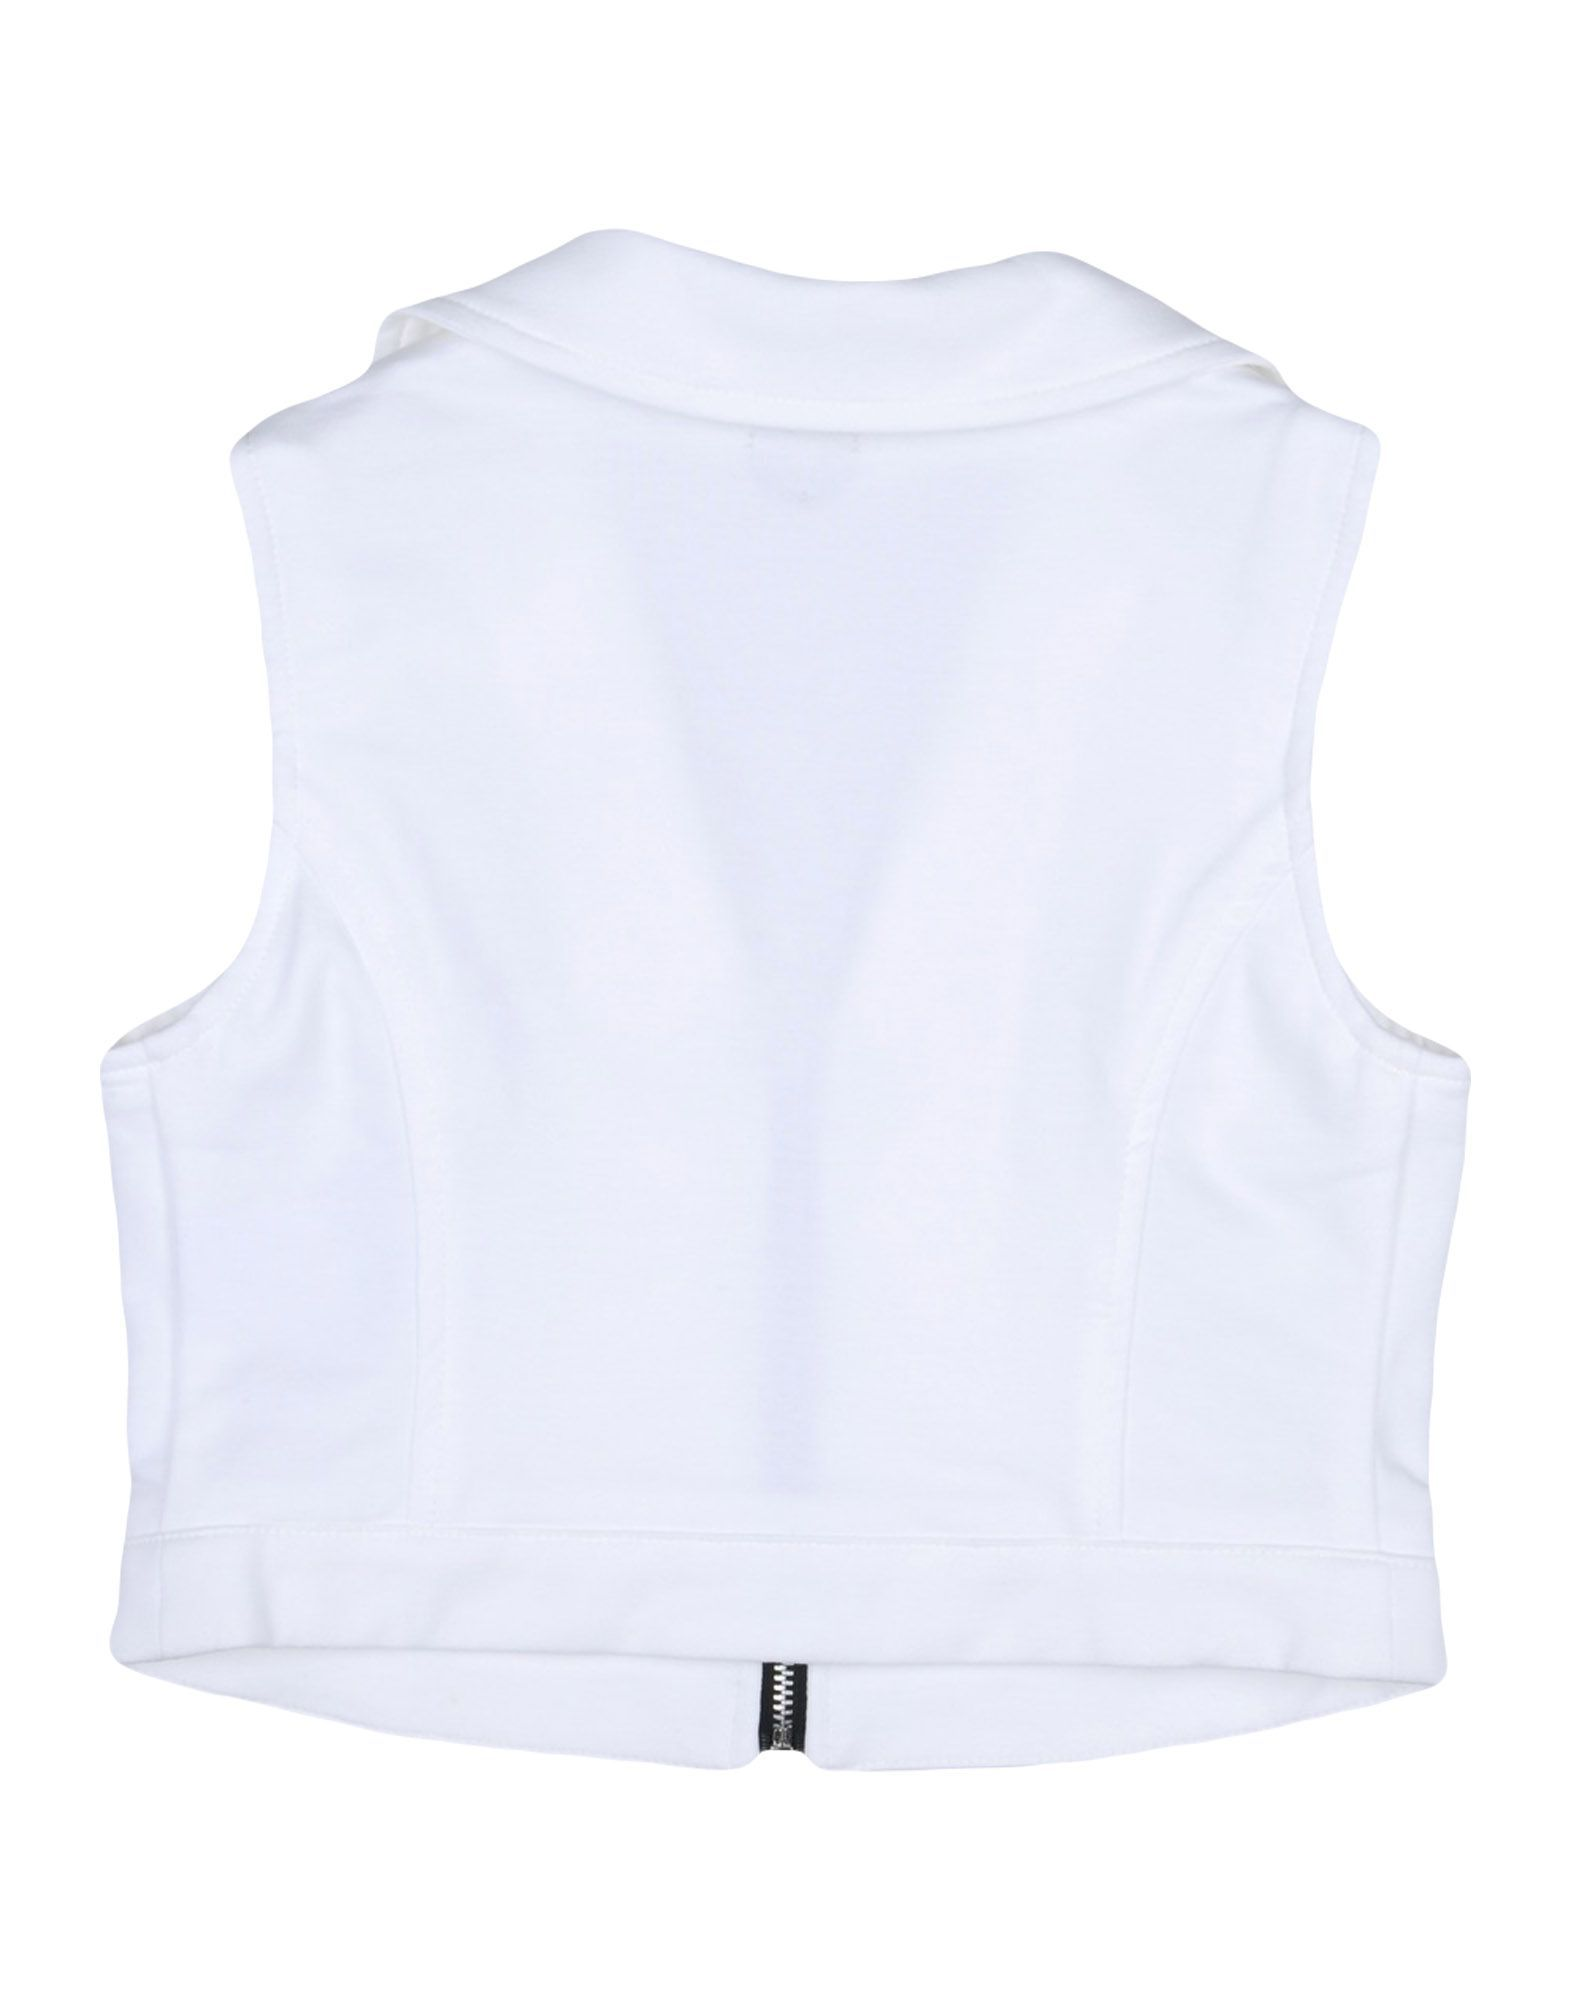 SUITS AND JACKETS Parrot White Girl Cotton